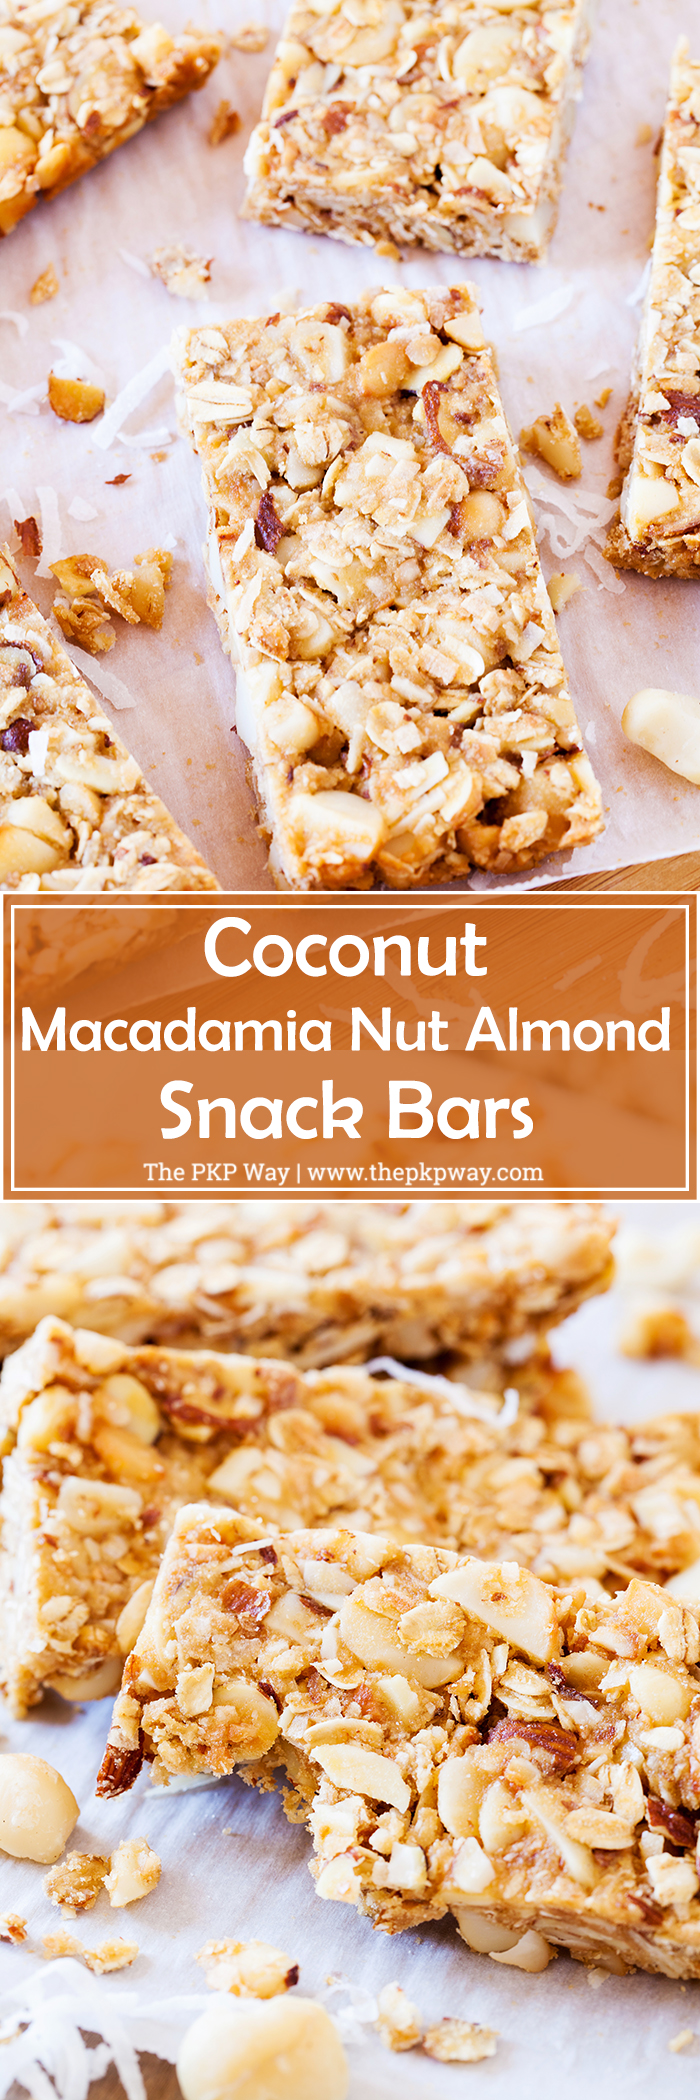 These Coconut Macadamia Nut Almond Snack Bars are perfect for an after school snack and will fill your mouth with warm, tropical flavors.